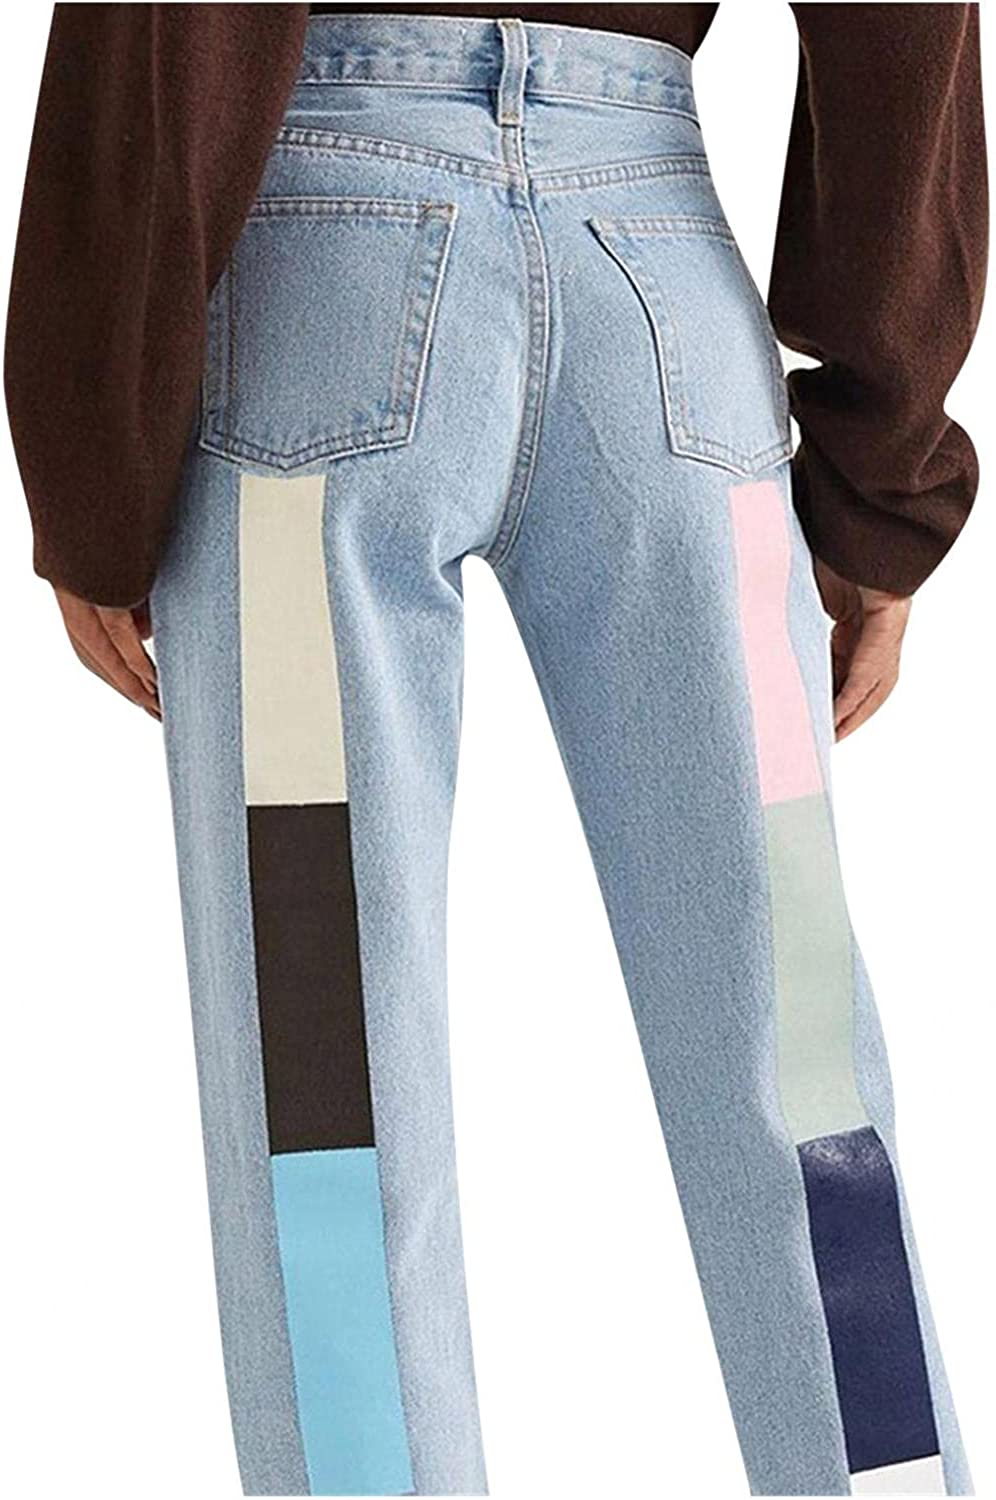 Bosanter Y2K Fashion Jeans for Women High Waisted Patchwork Pants Trousers Wide Leg Denim Jeans Streetwear Straight Fit Jeans